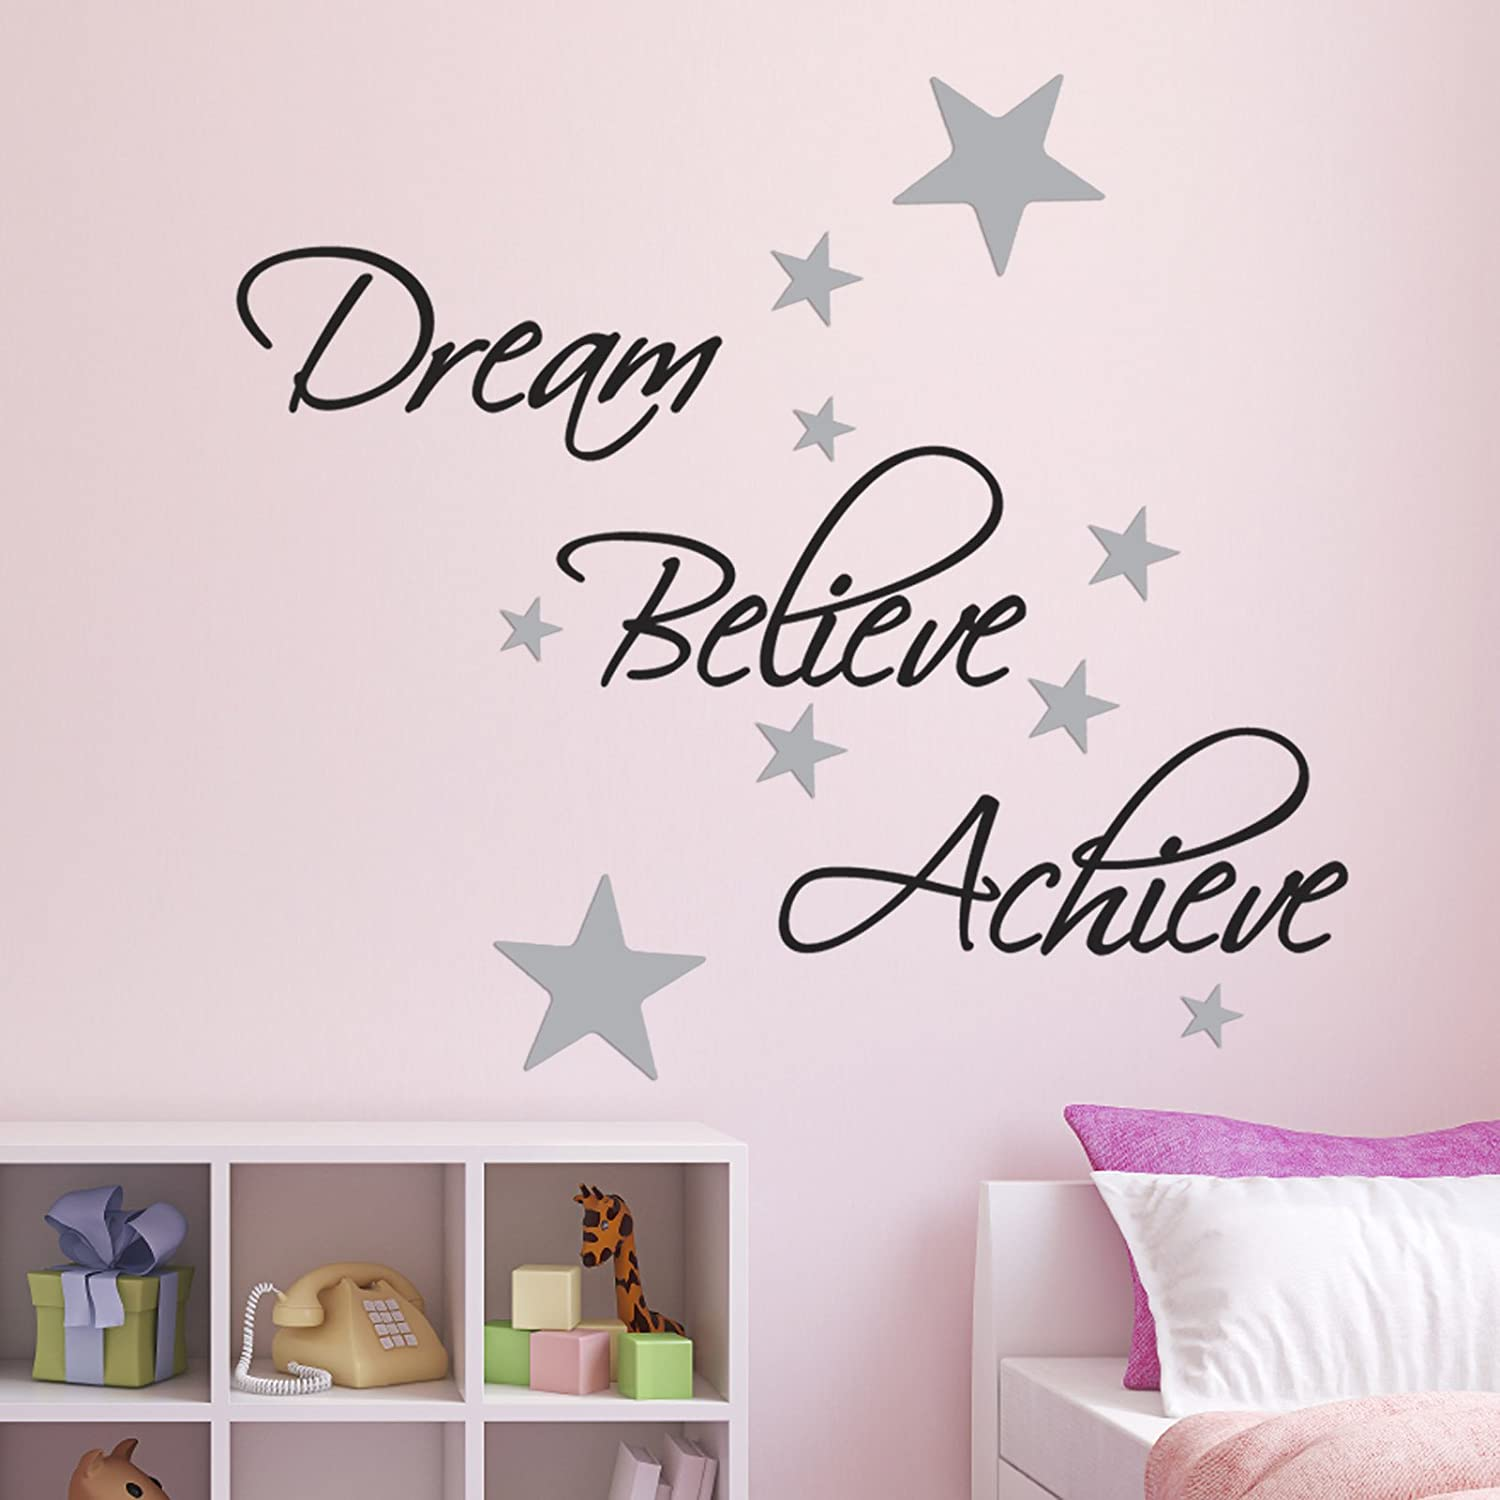 Dream, Believe, Achieve Wall Sticker Pack   Includes 60 Silver Star Wall  Decals: Amazon.co.uk: Kitchen U0026 Home Part 69